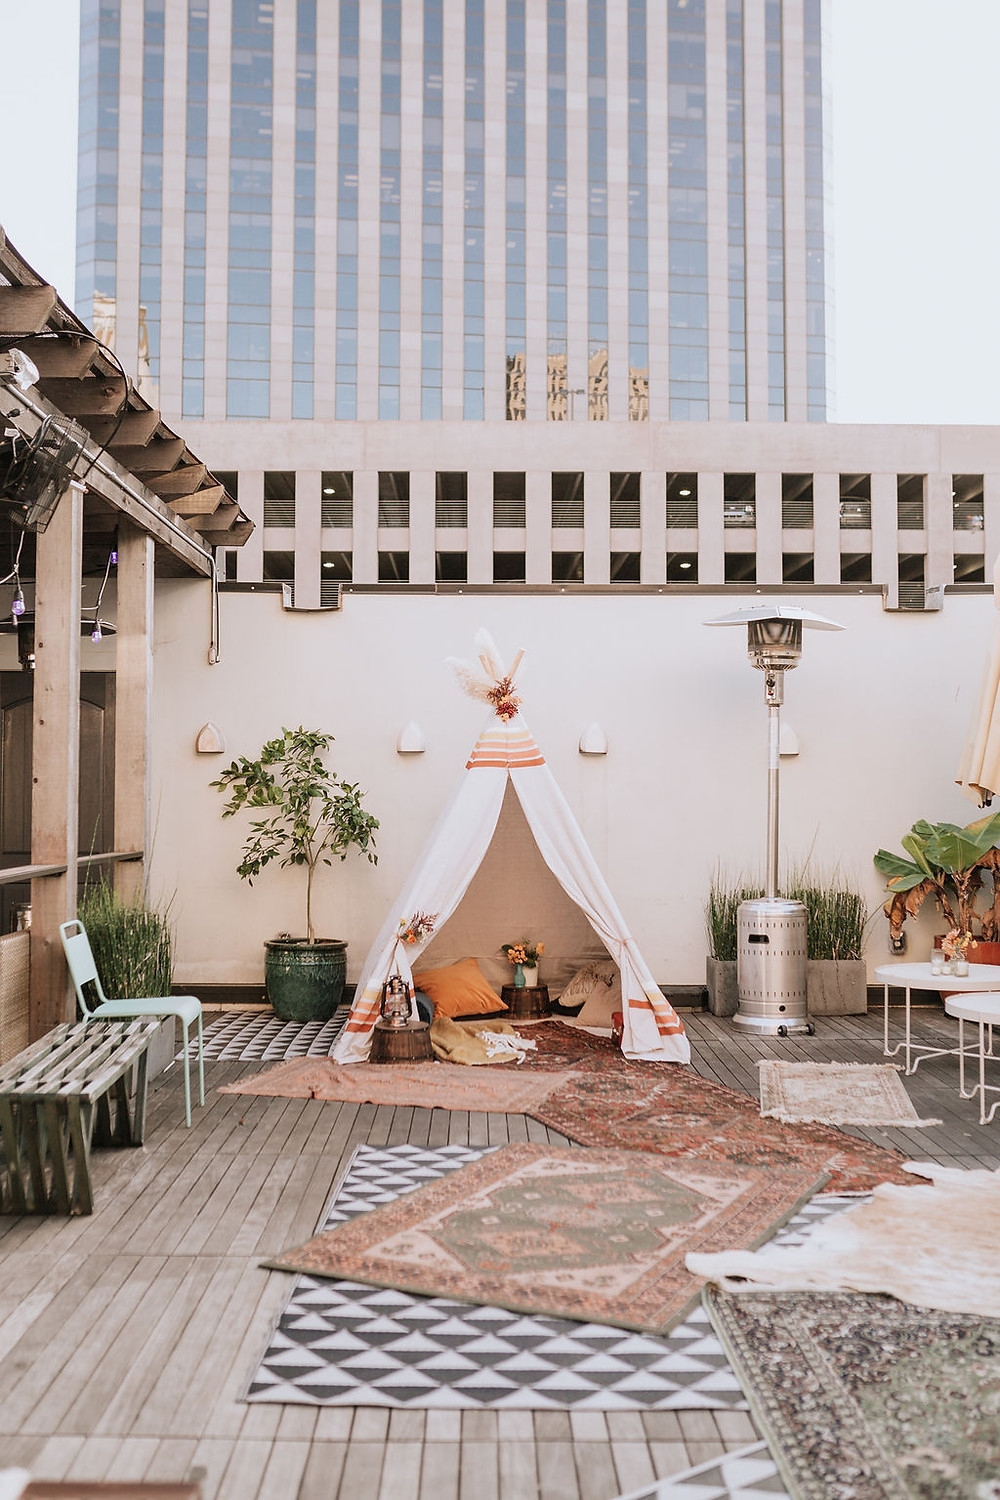 Dashing Darling Birthday | Bohemian, New Orleans Style Celebration at Catahoula Hotel with Alyssa Fisher Photography, It's a Nice Day, and Lovegood Wedding & Event Rentals | Boho, Vintage Rentals, Wicker Chairs, Tipi, Rugs, Poufs, Flower Power, Macrame Details